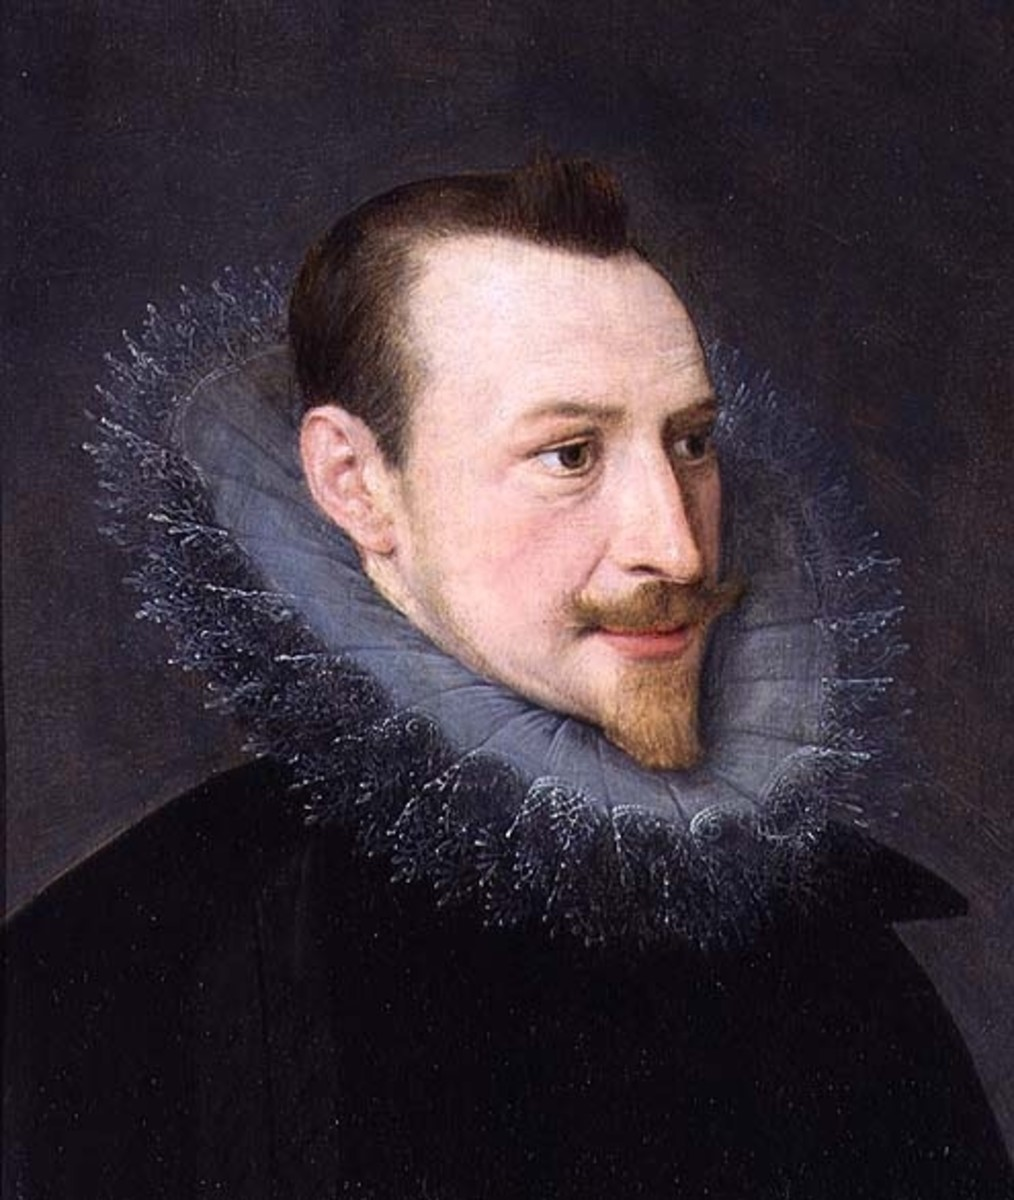 "Edmund Spenser, English Renaissance poet and author of The Fairie Queene. His sonnet Sequence ""Amoretti"" is famous for his innovation and originality"